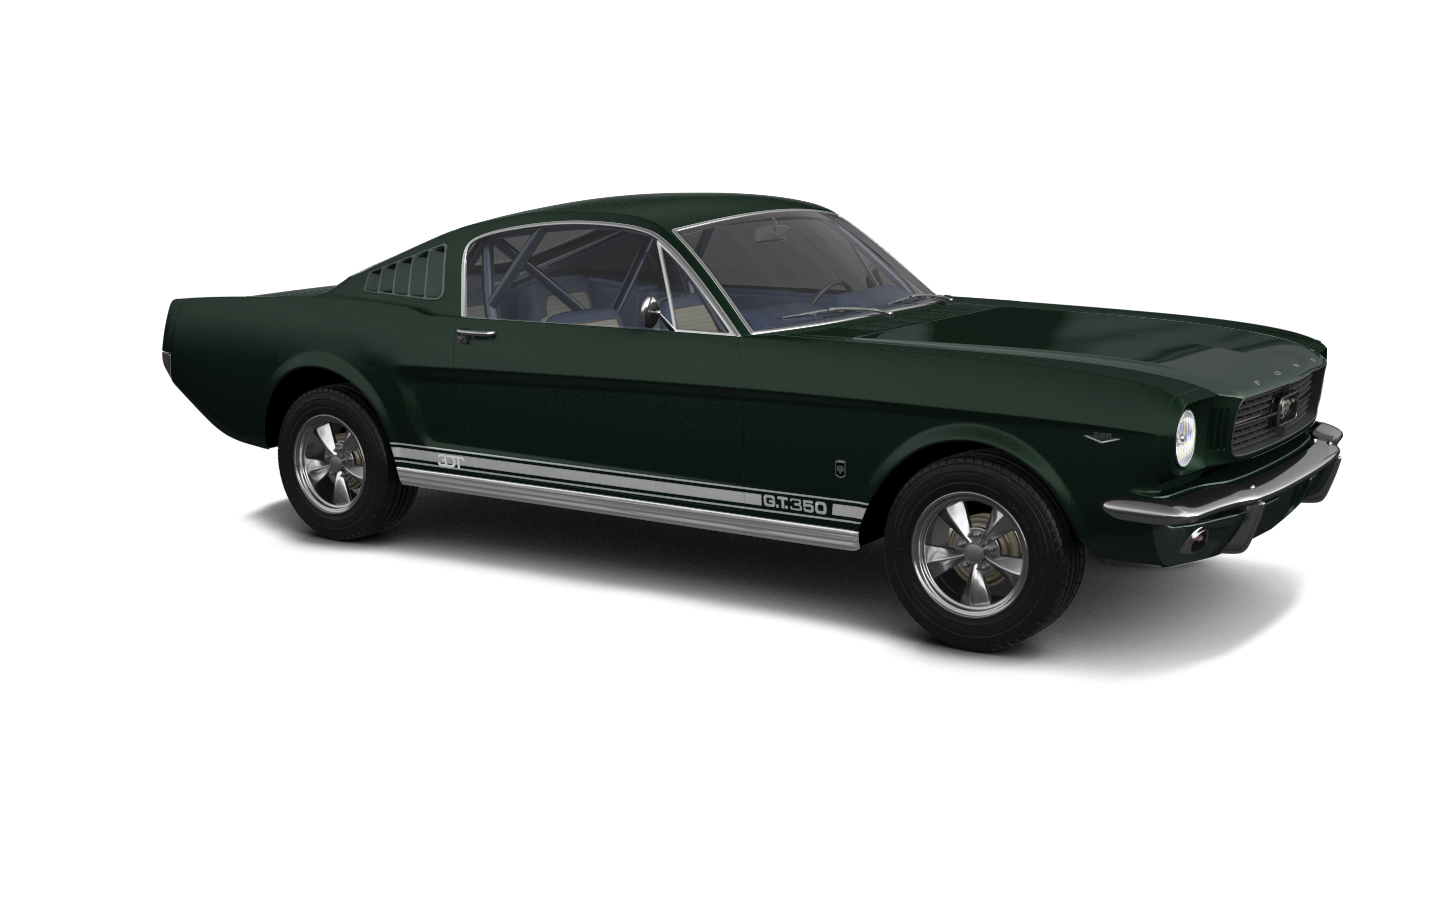 Ford Mustang'64